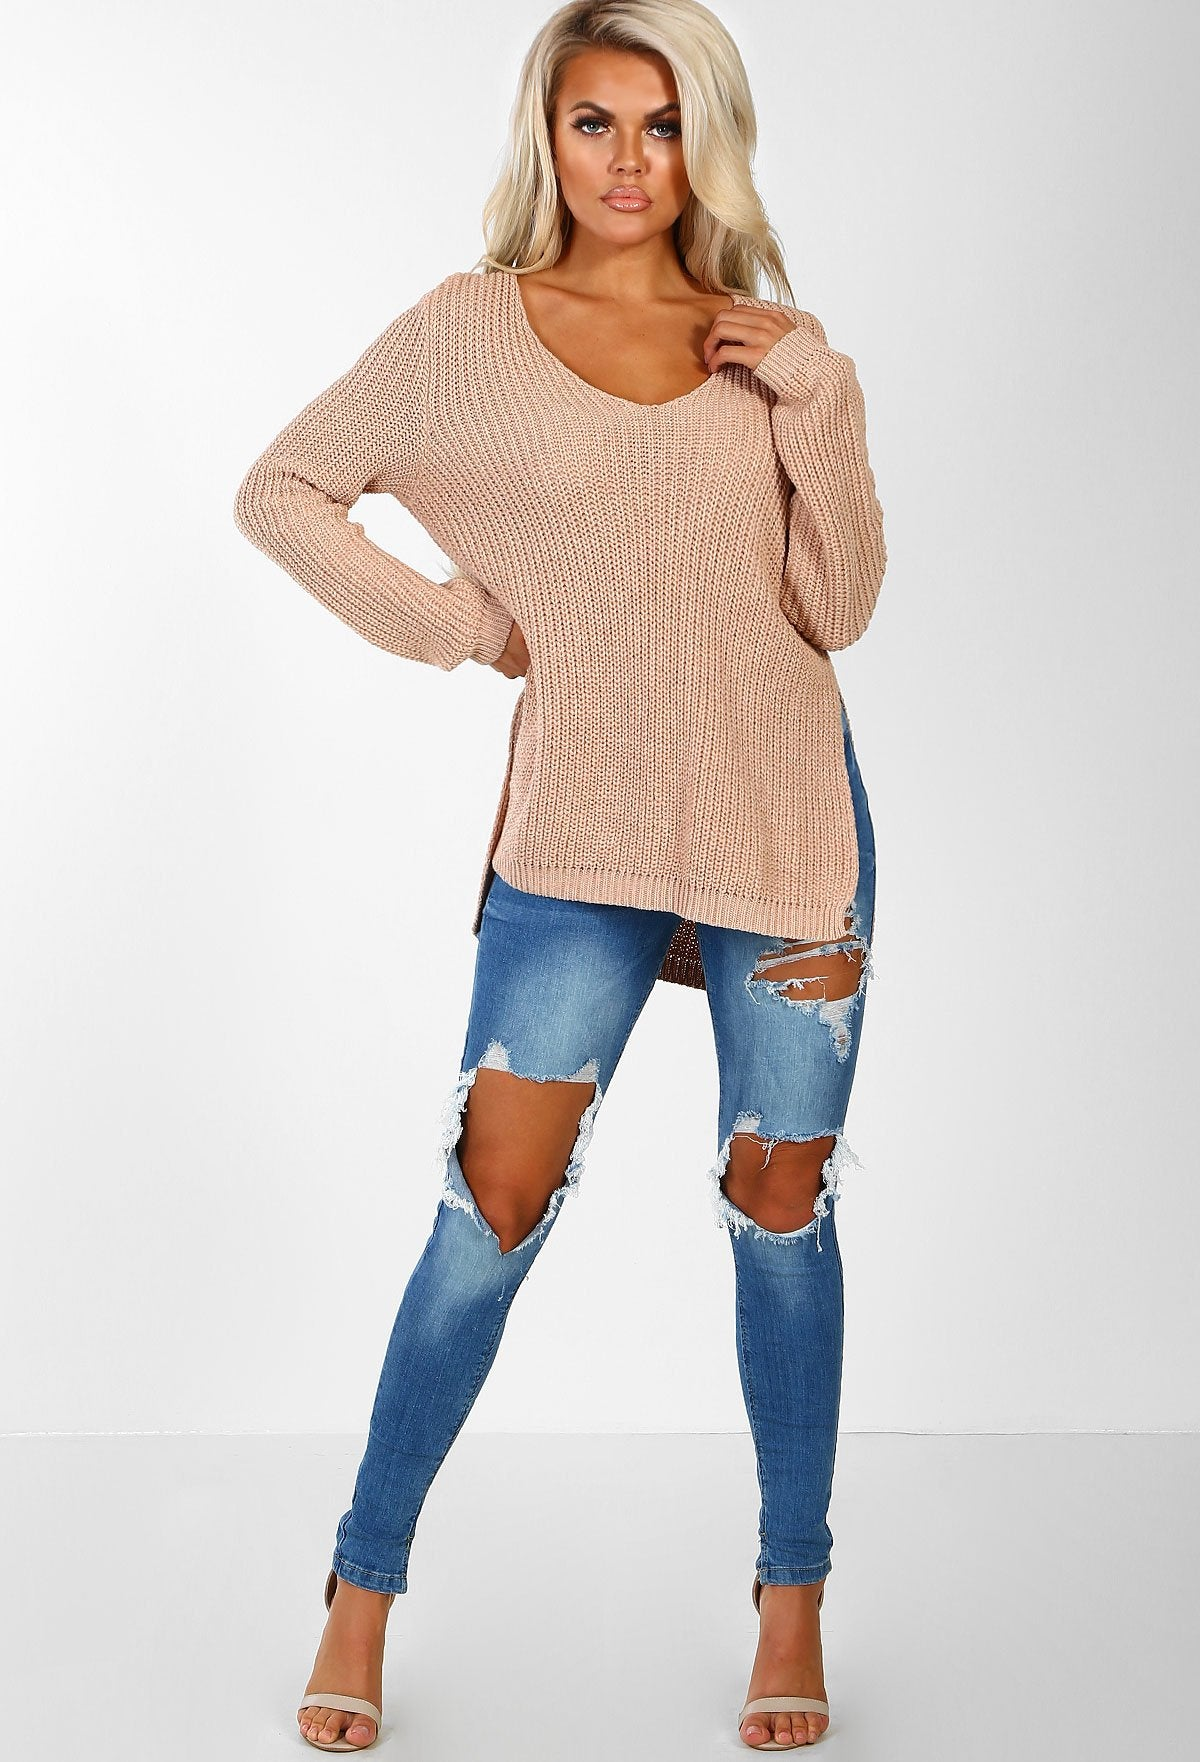 Chills Baby Nude Side Split Knitted Jumper  Pink Boutique Uk-1181